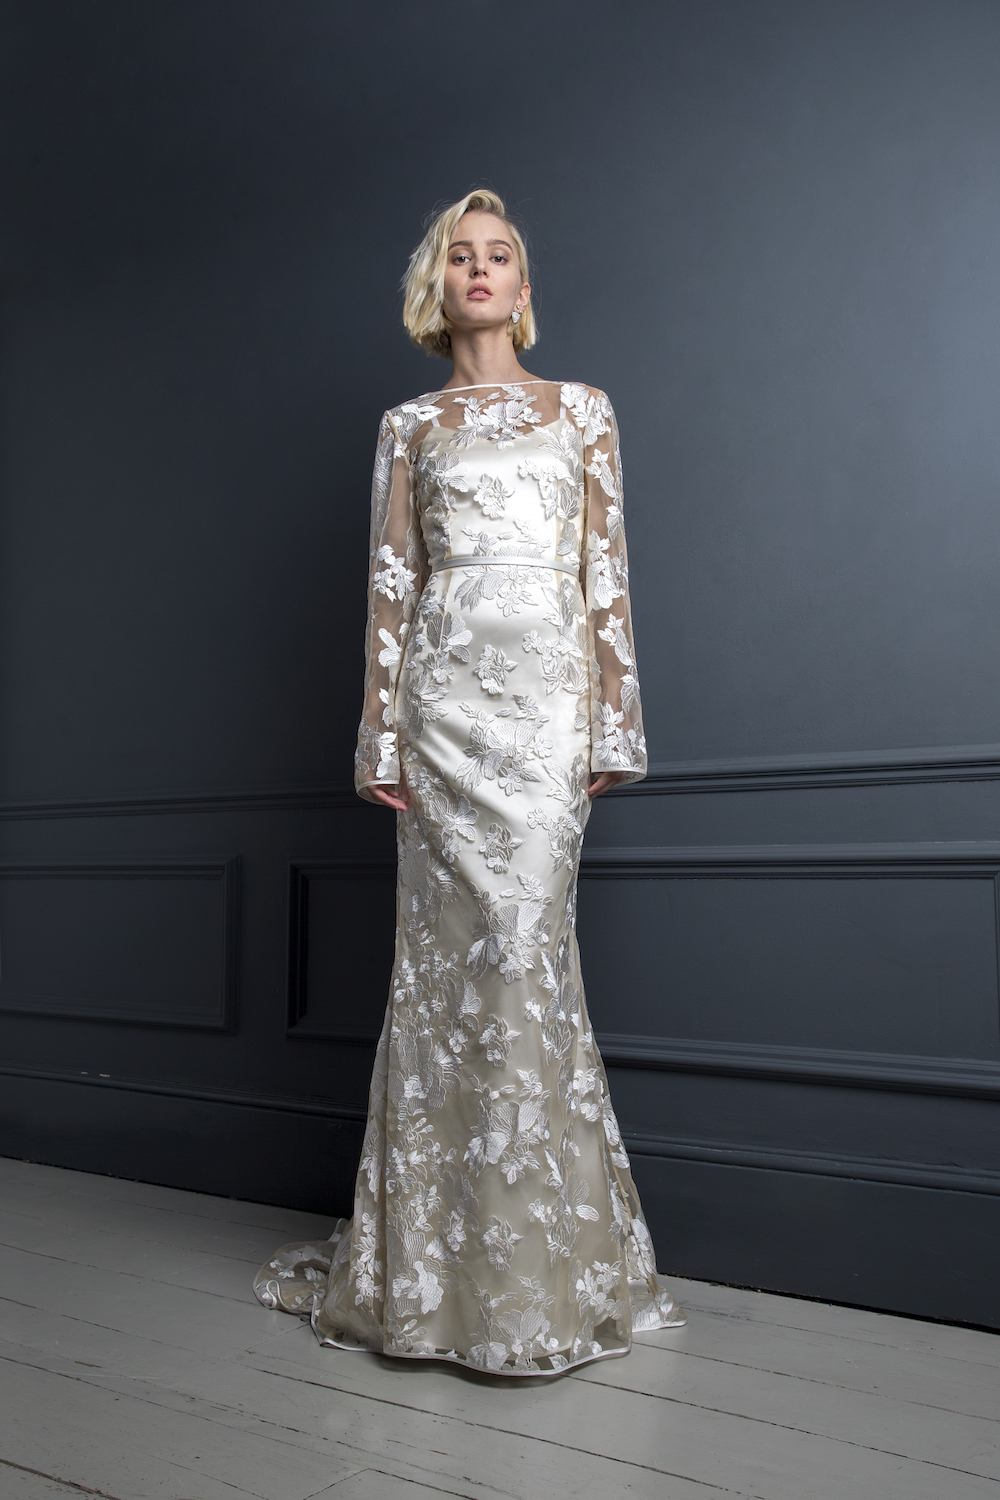 SYEVIE DRESS | WEDDING DRESS BY HALFPENNY LONDON